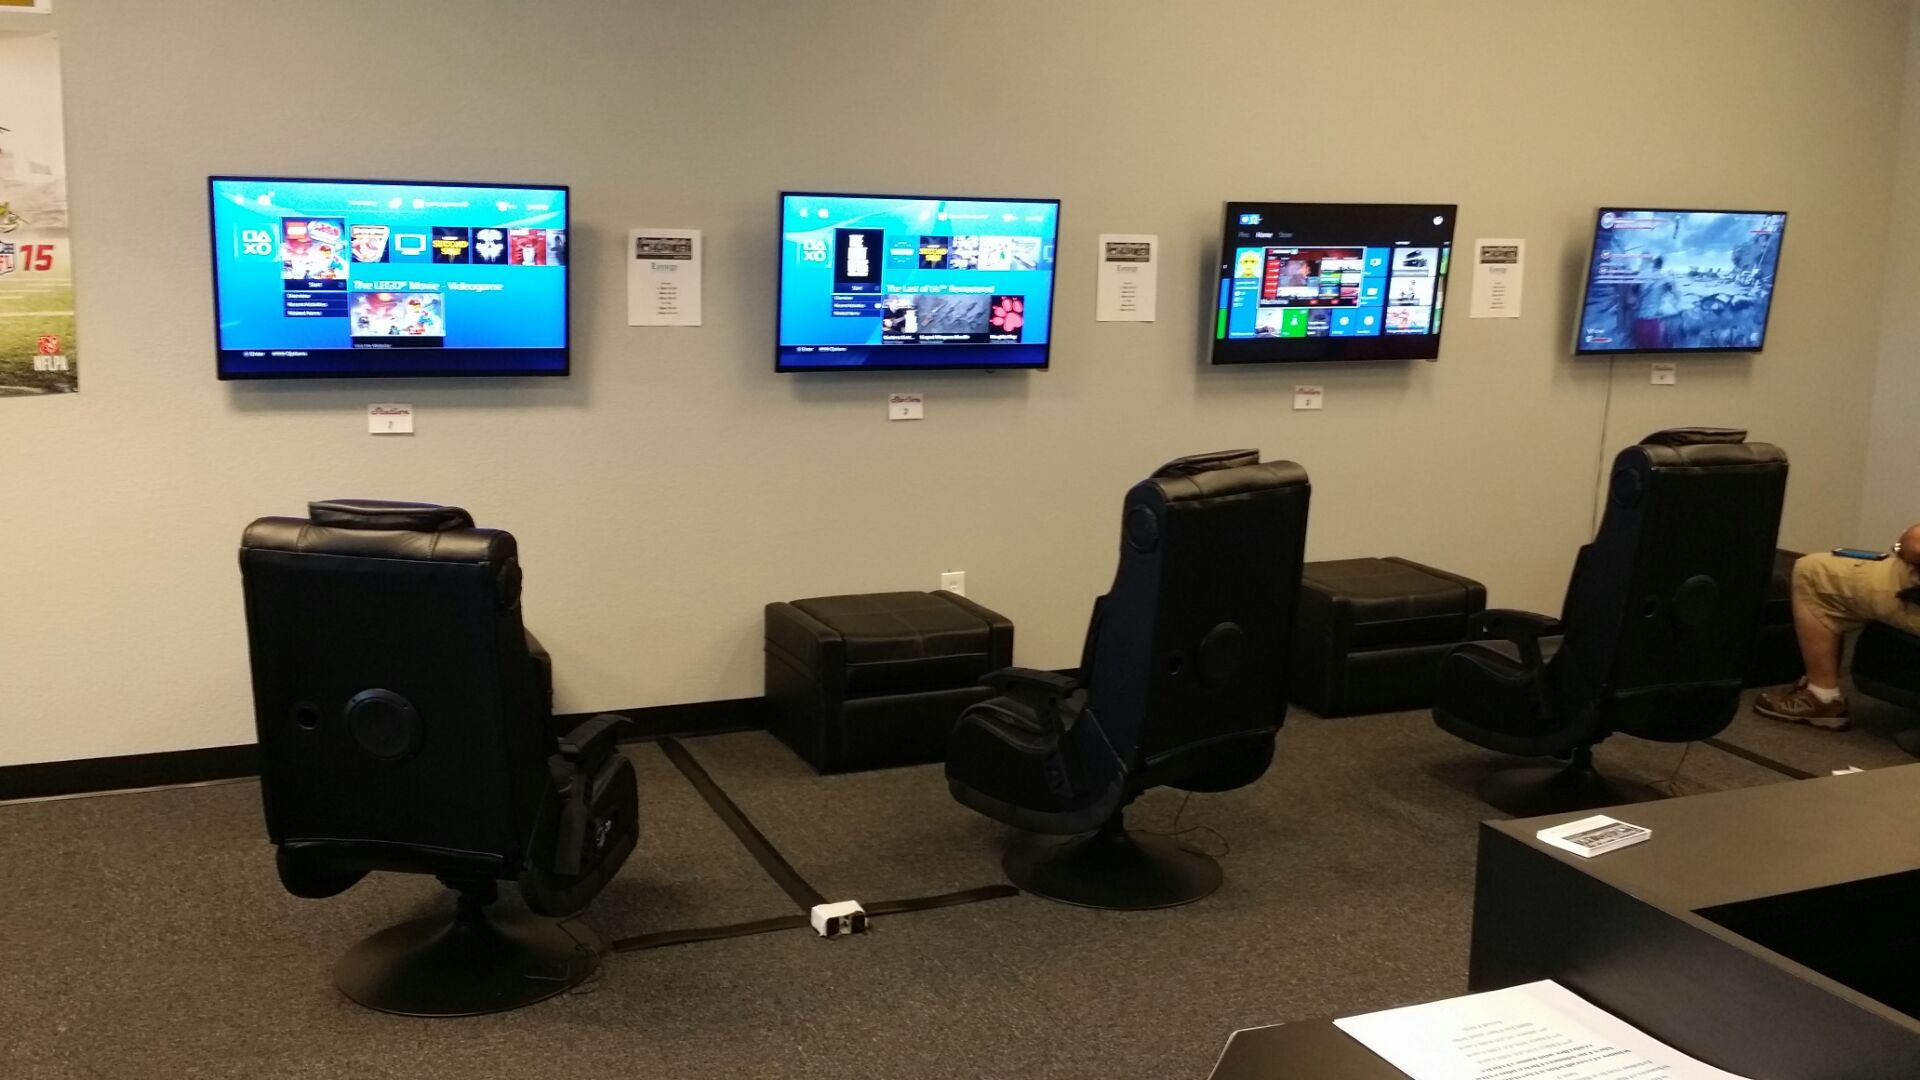 Natomas, CA - Gaming Store in Natomas Fights to Stay Open | The ...